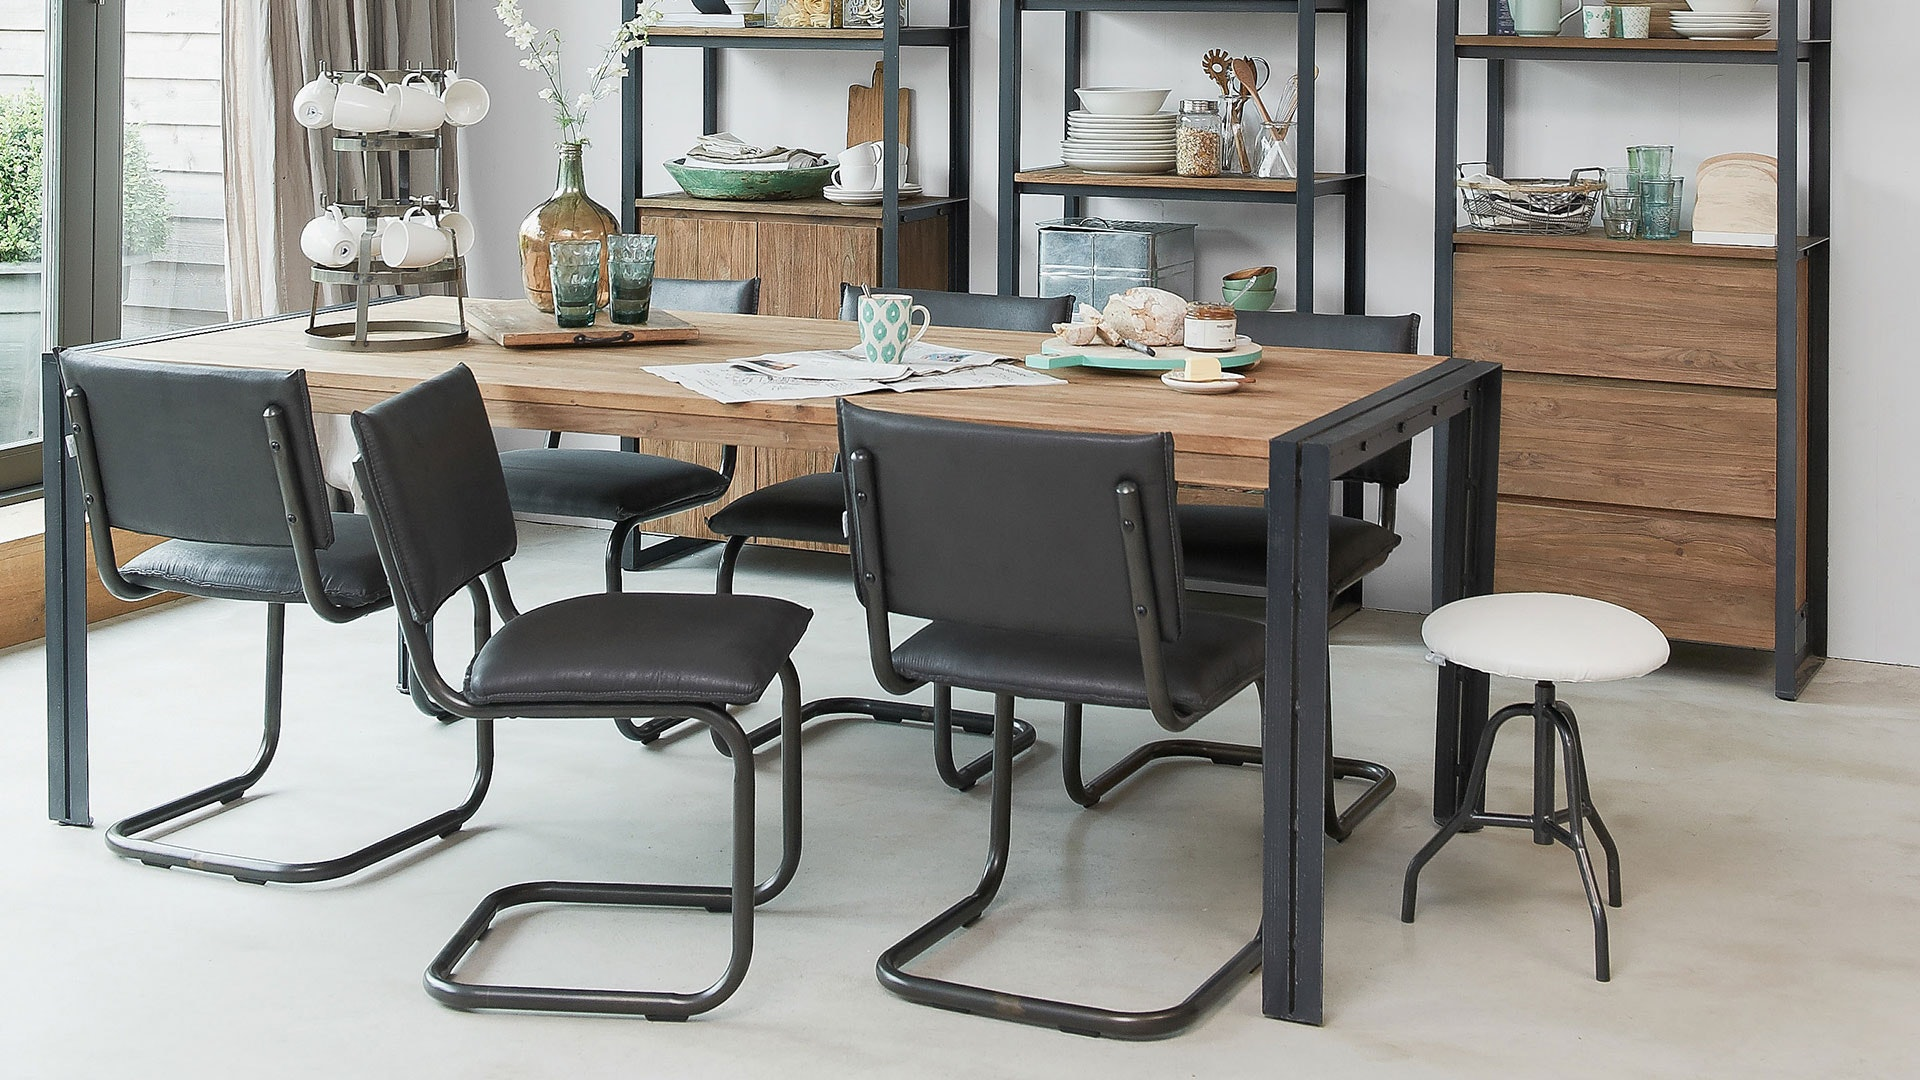 Fendy Dining Table by D-Bodhi Collection